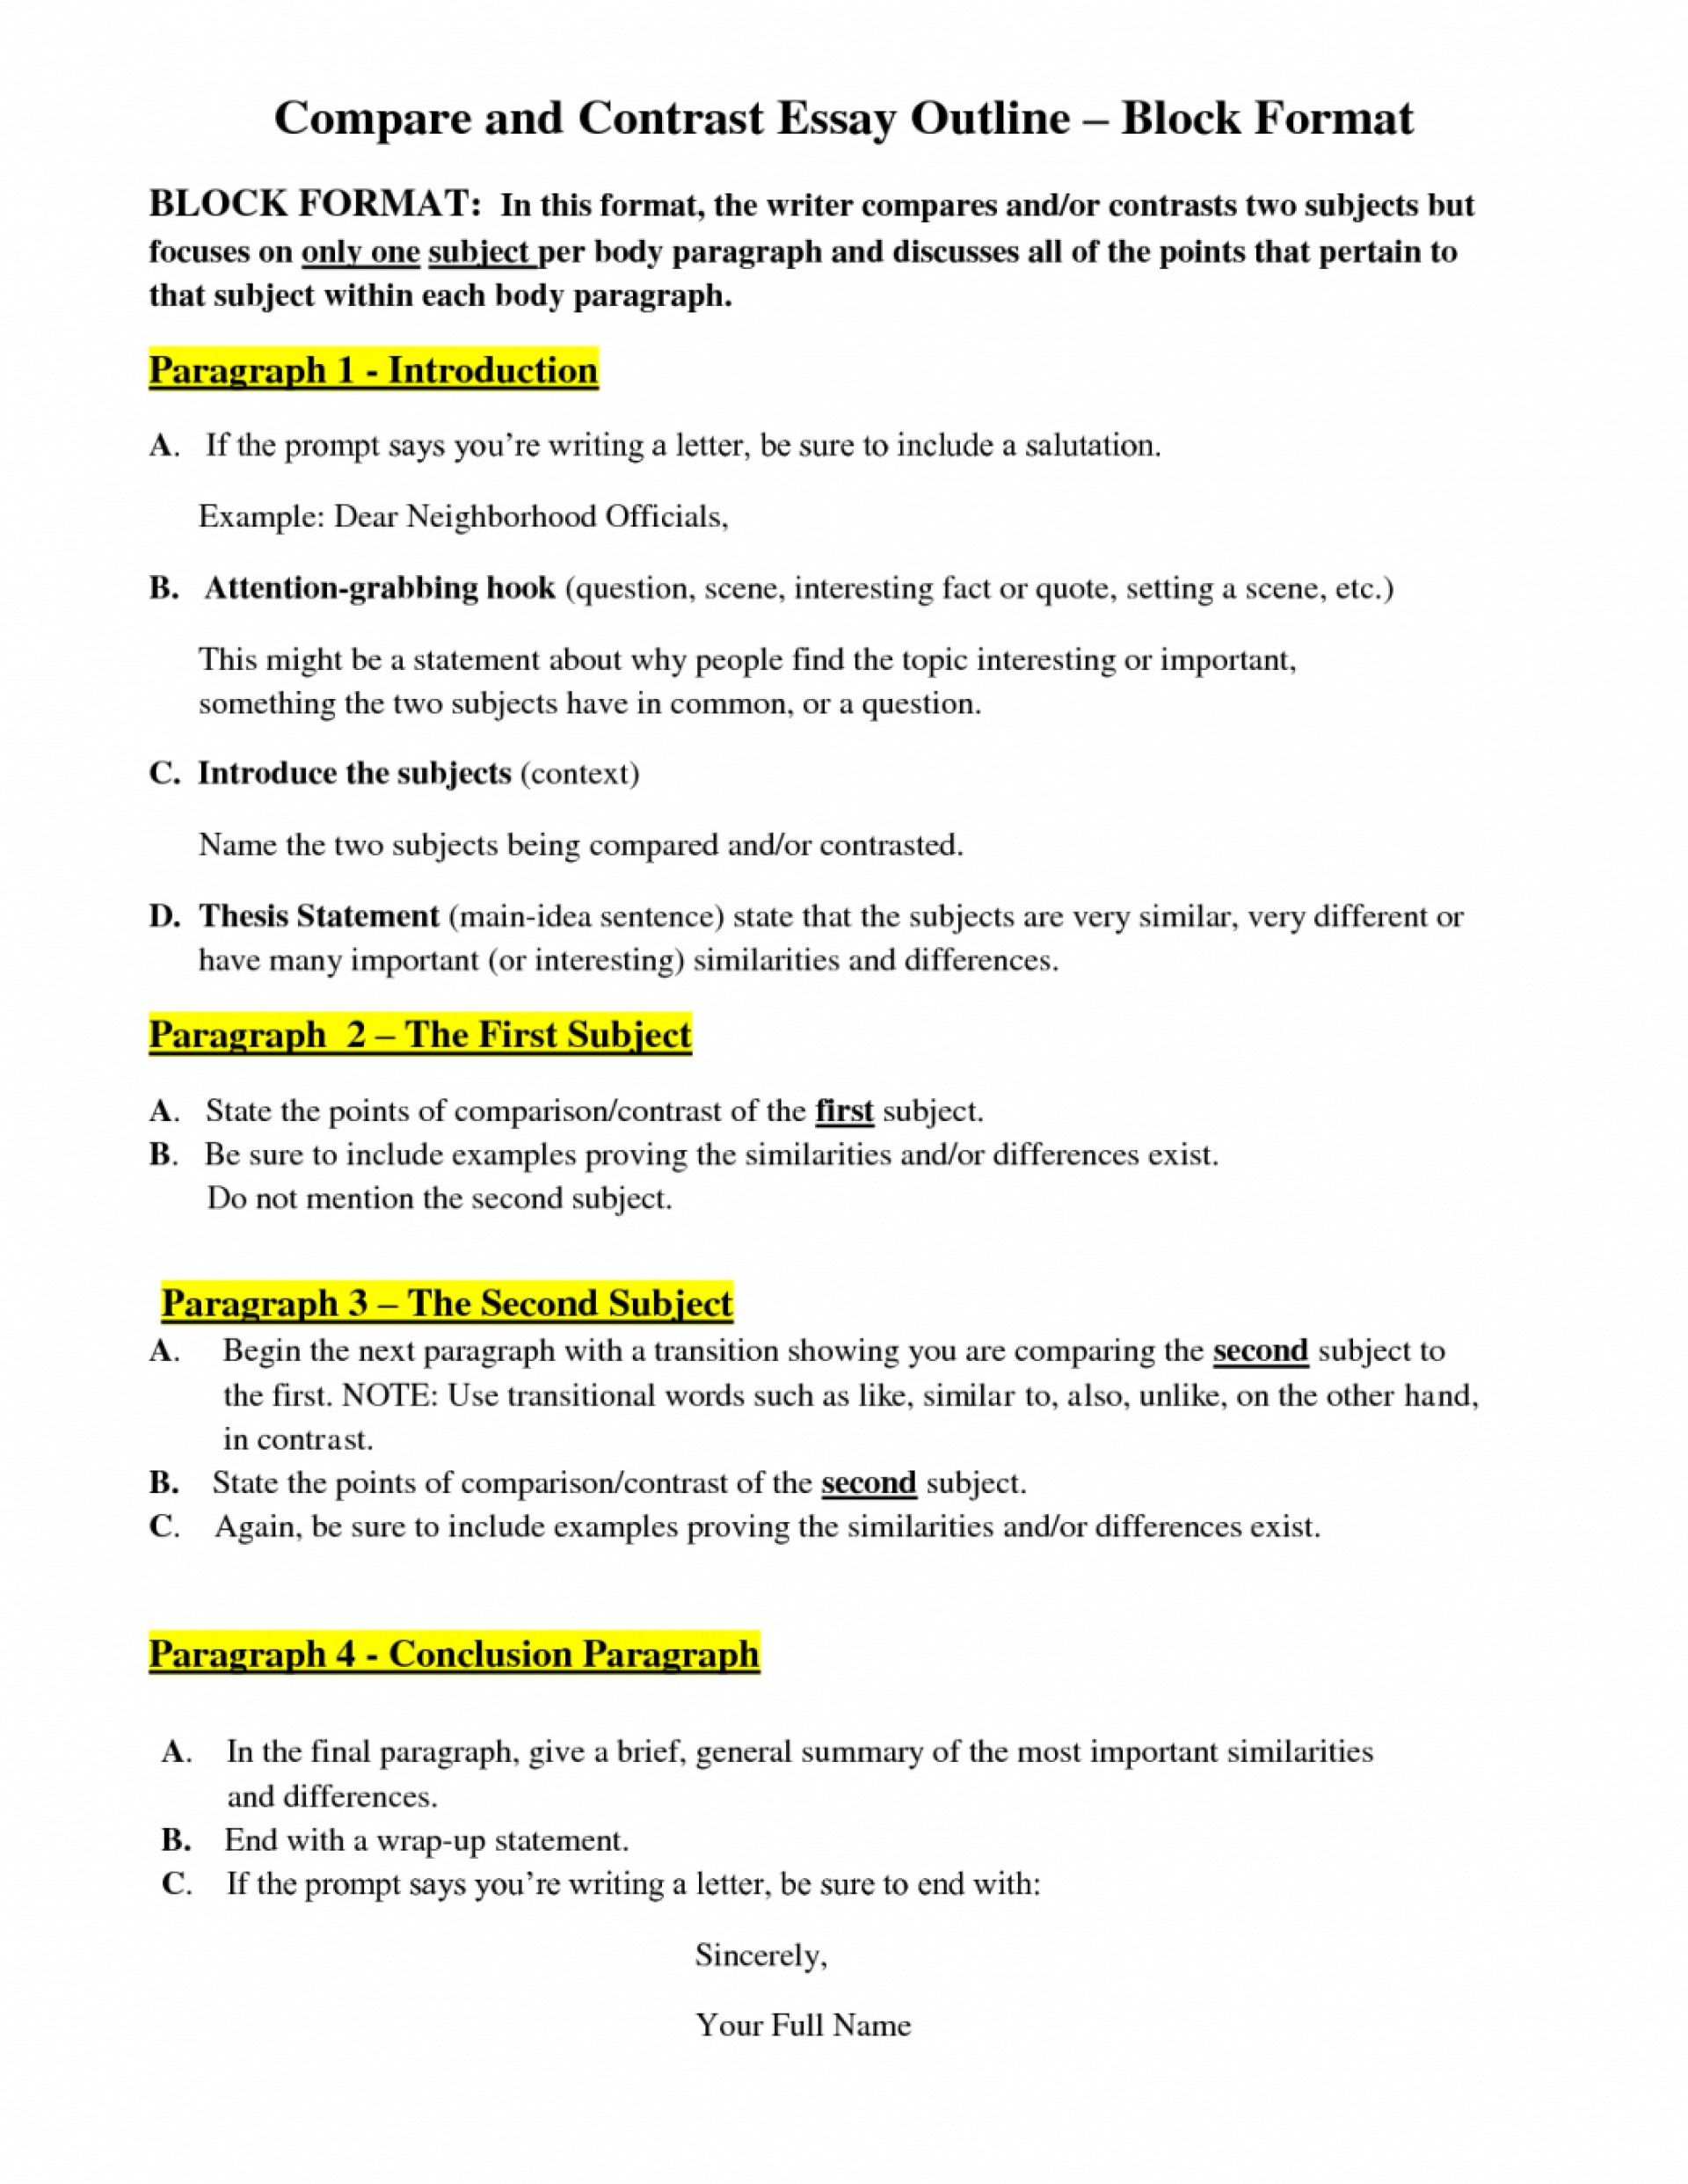 007 Essay Example Essays Compare And Contrasts For Year College Vs Outline Block 1048x1356 Comparison Best Contrast Sample Free Examples Middle School Samples High Pdf 1920